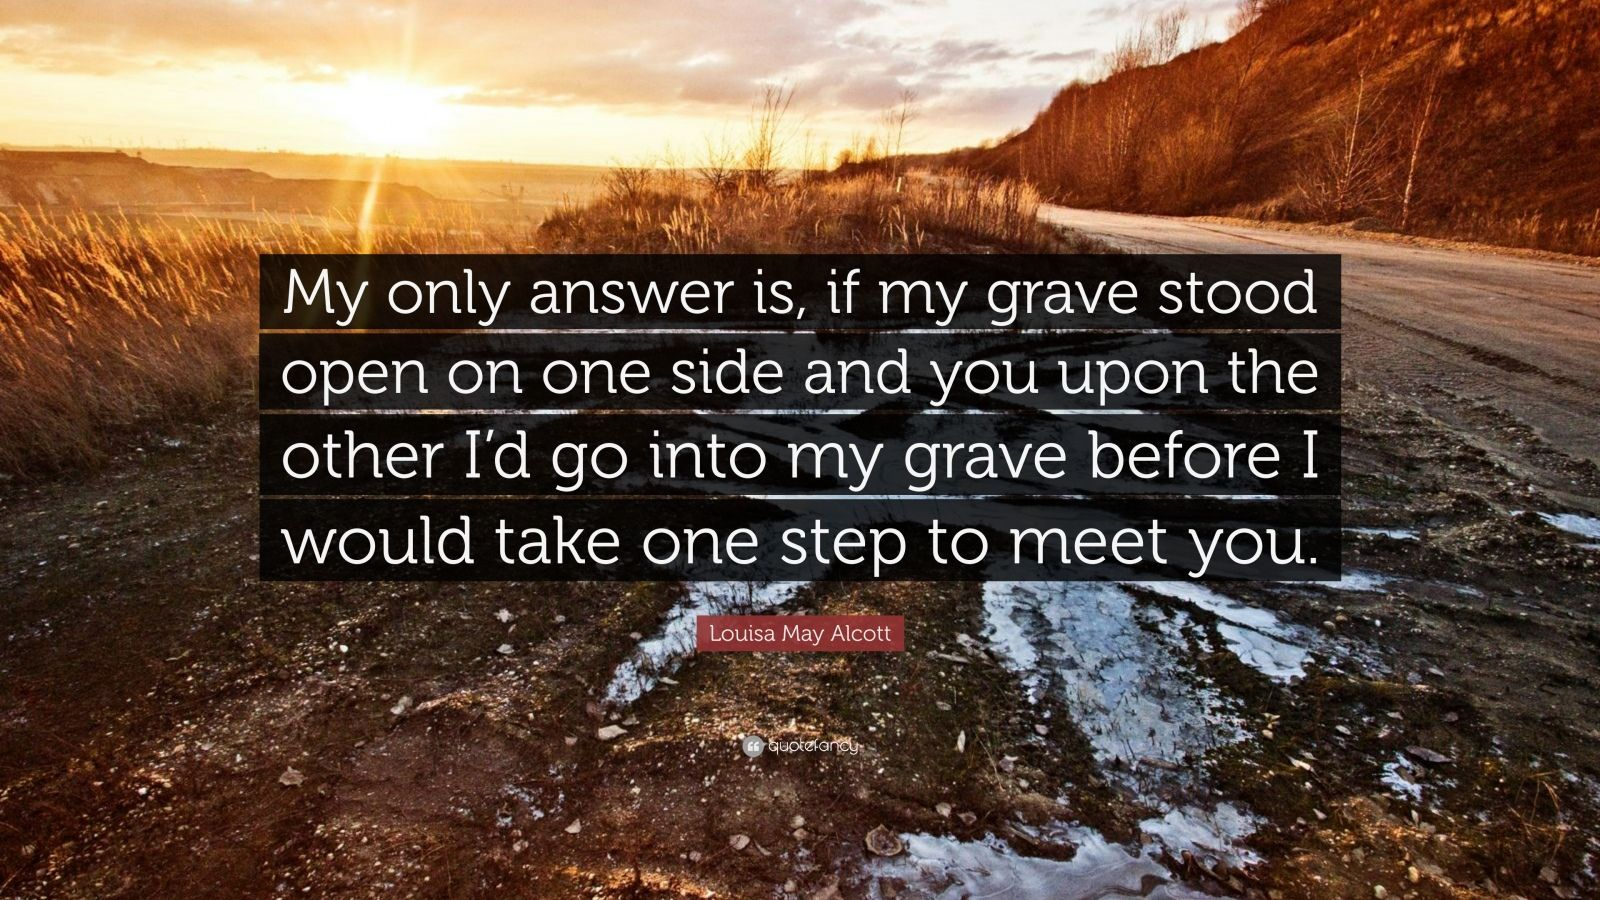 """Louisa May Alcott Quote: """"My only answer is, if my grave stood open on one side and you upon the other I'd go into my grave before I would take one step to meet you."""""""